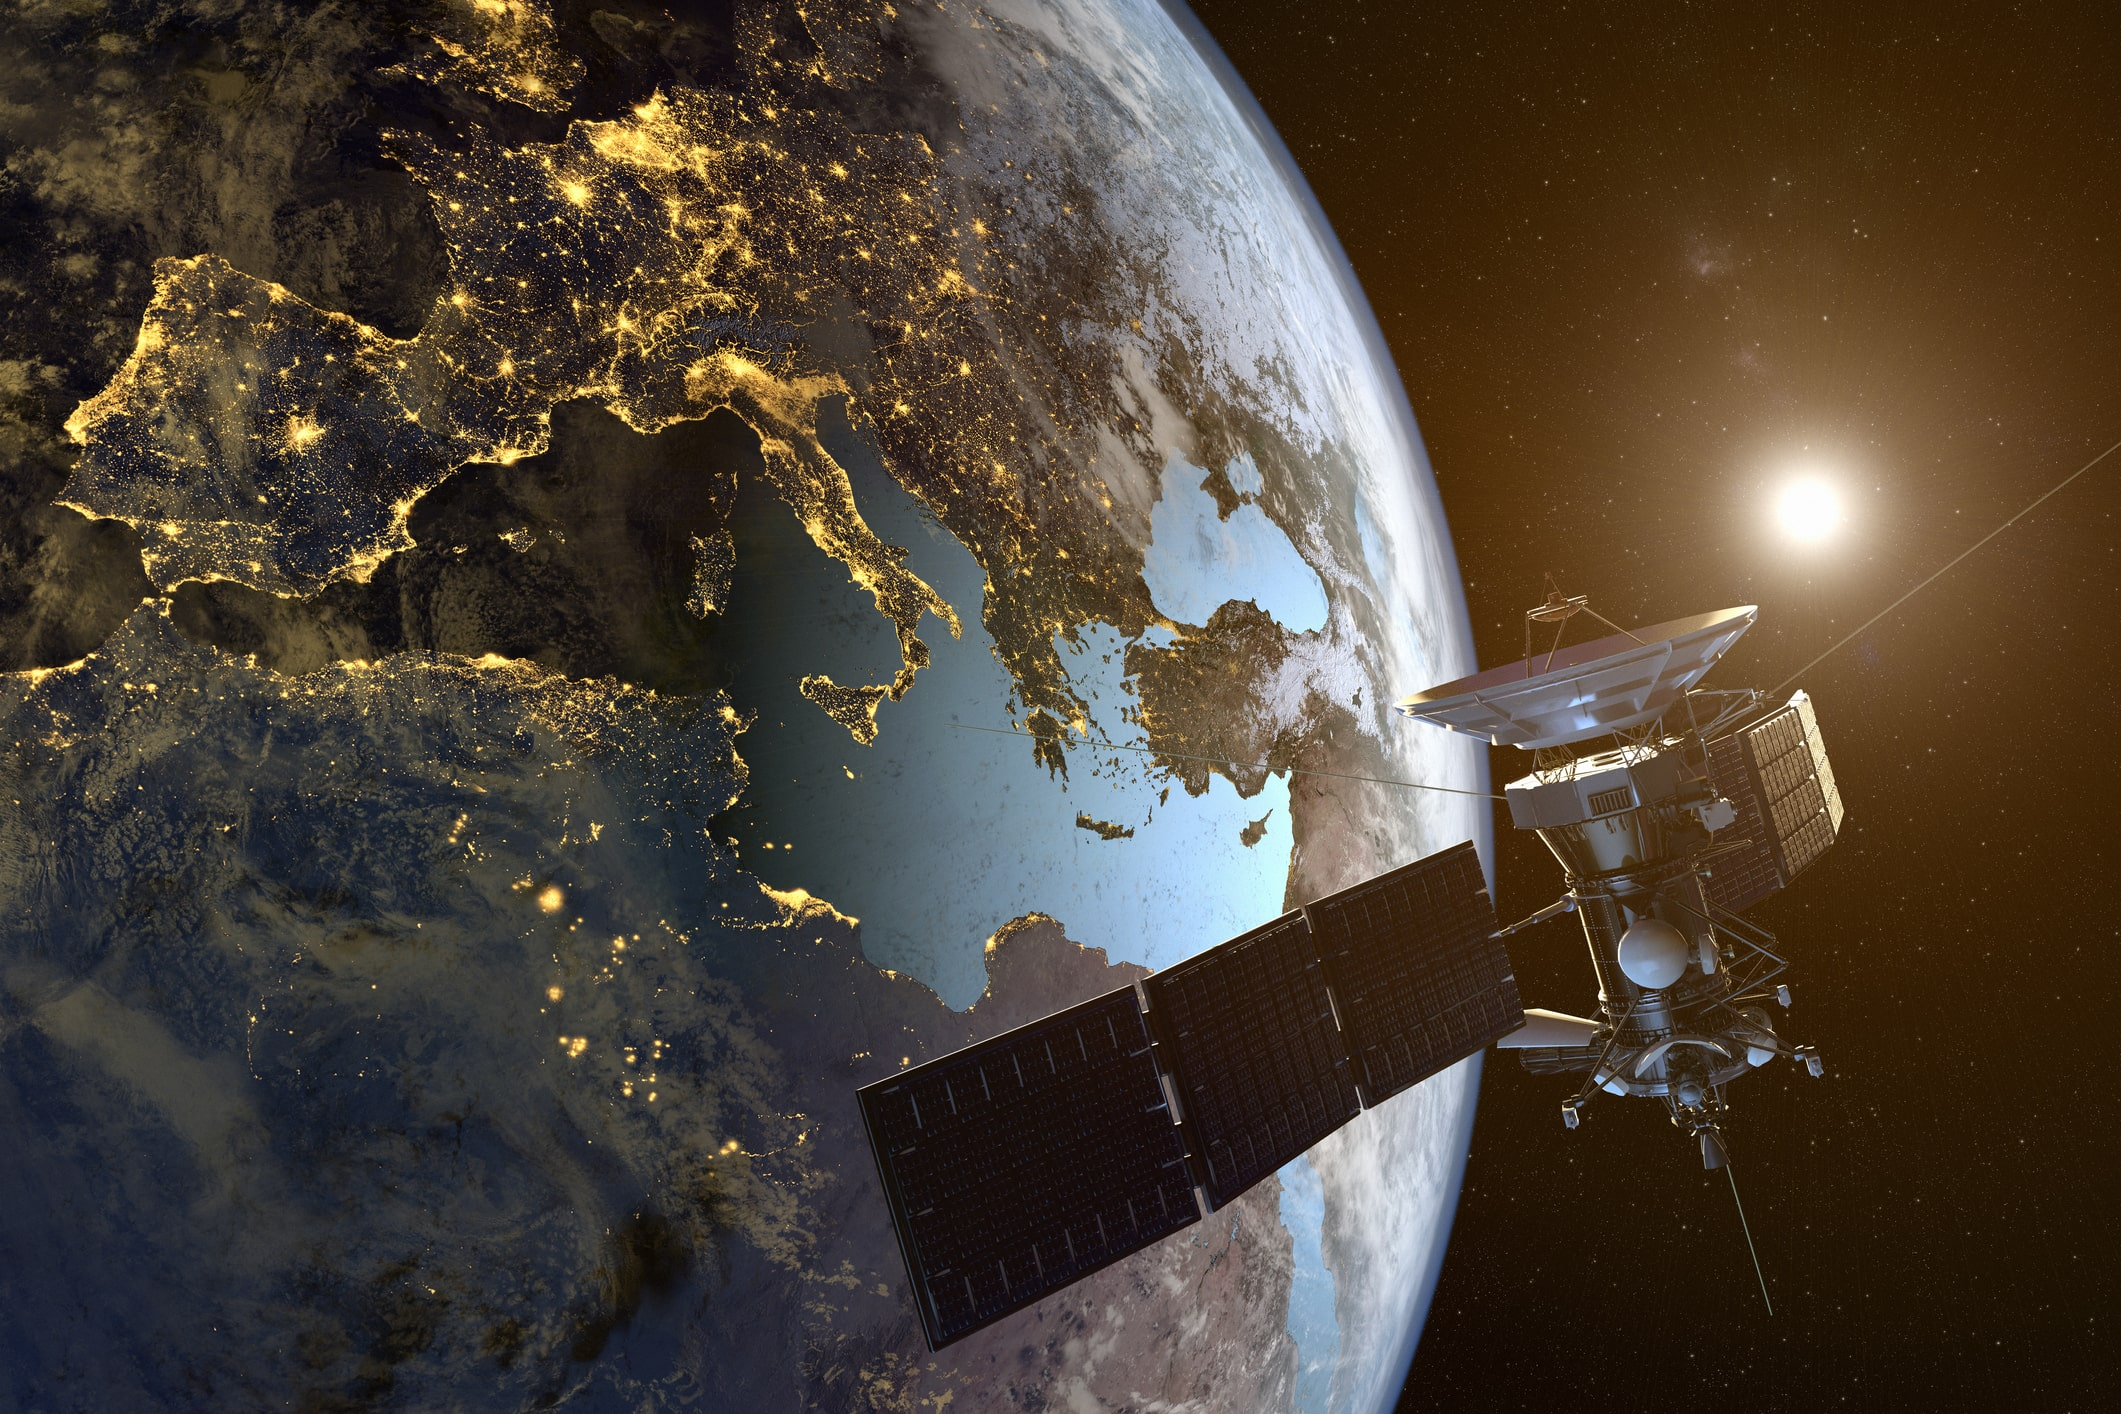 Satellite Manufacturing and Launch Systems Market to Gain Traction from  Increasing Utilization in the Global Military and Defense Industry -  TechStory